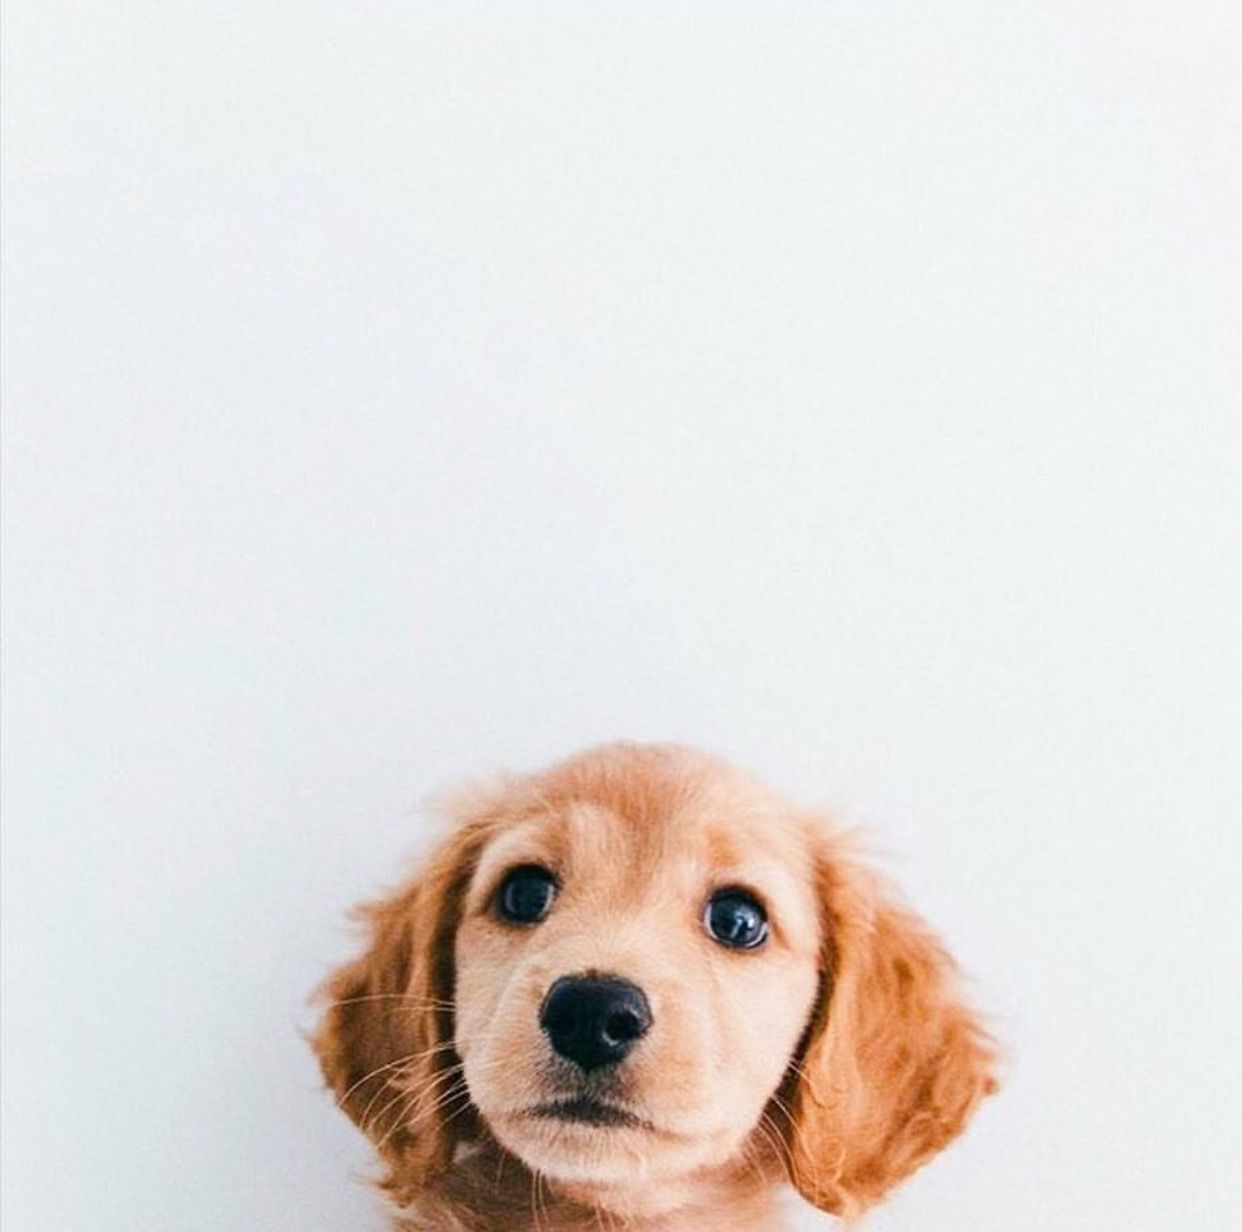 I N N O C E N C E Cute Animals Puppies Cute Dogs